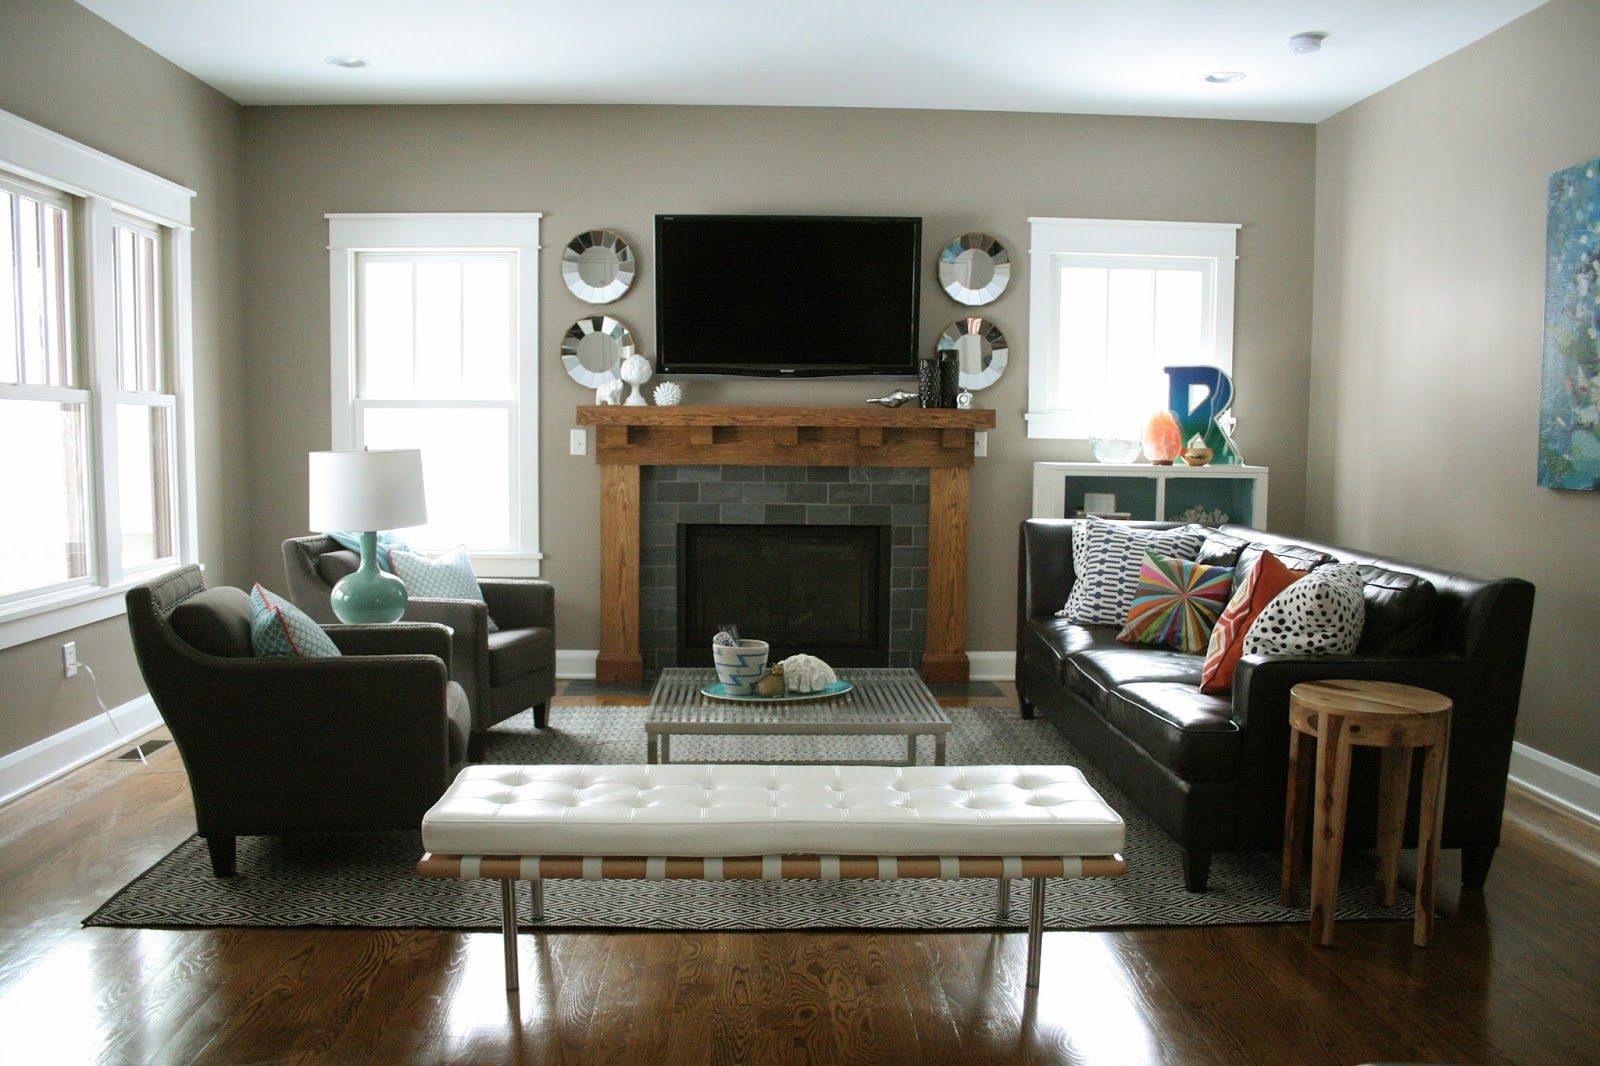 Small Living Room Layout Ideas With Fireplace ... on Small Space Small Living Room With Fireplace  id=73086